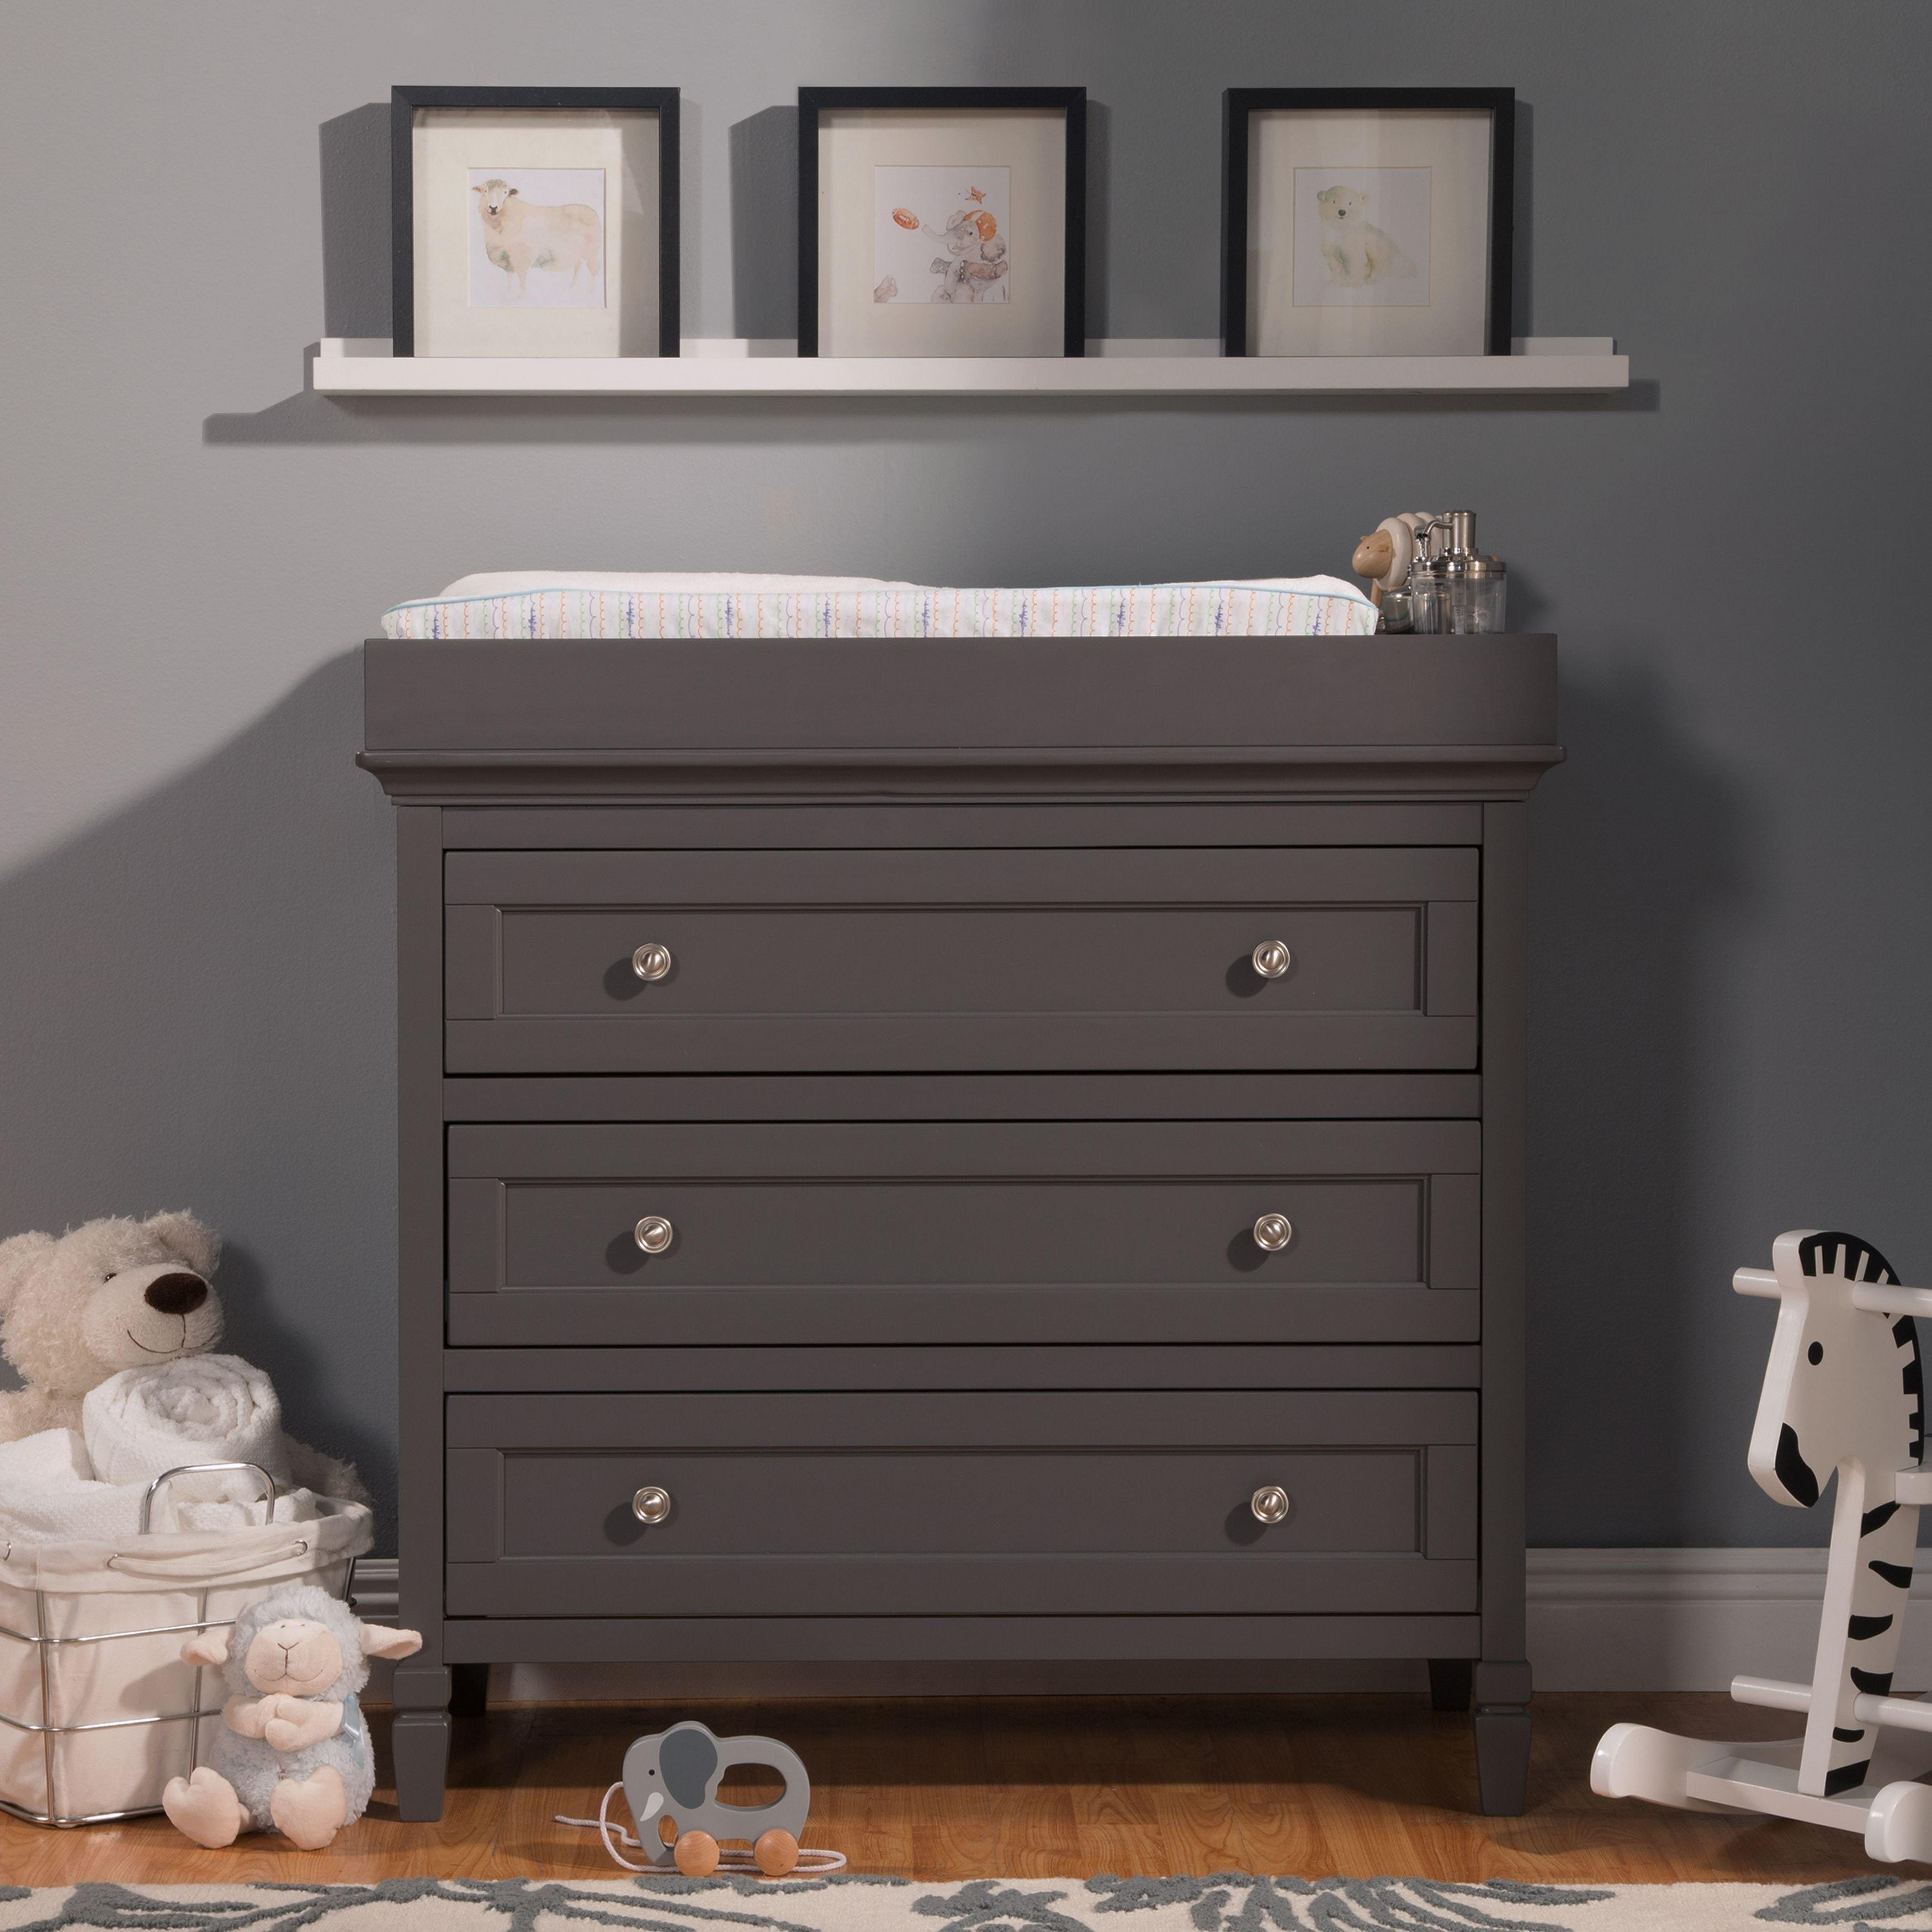 kalani dresser drawer fairway kids double wayfair reviews davinci pdx baby